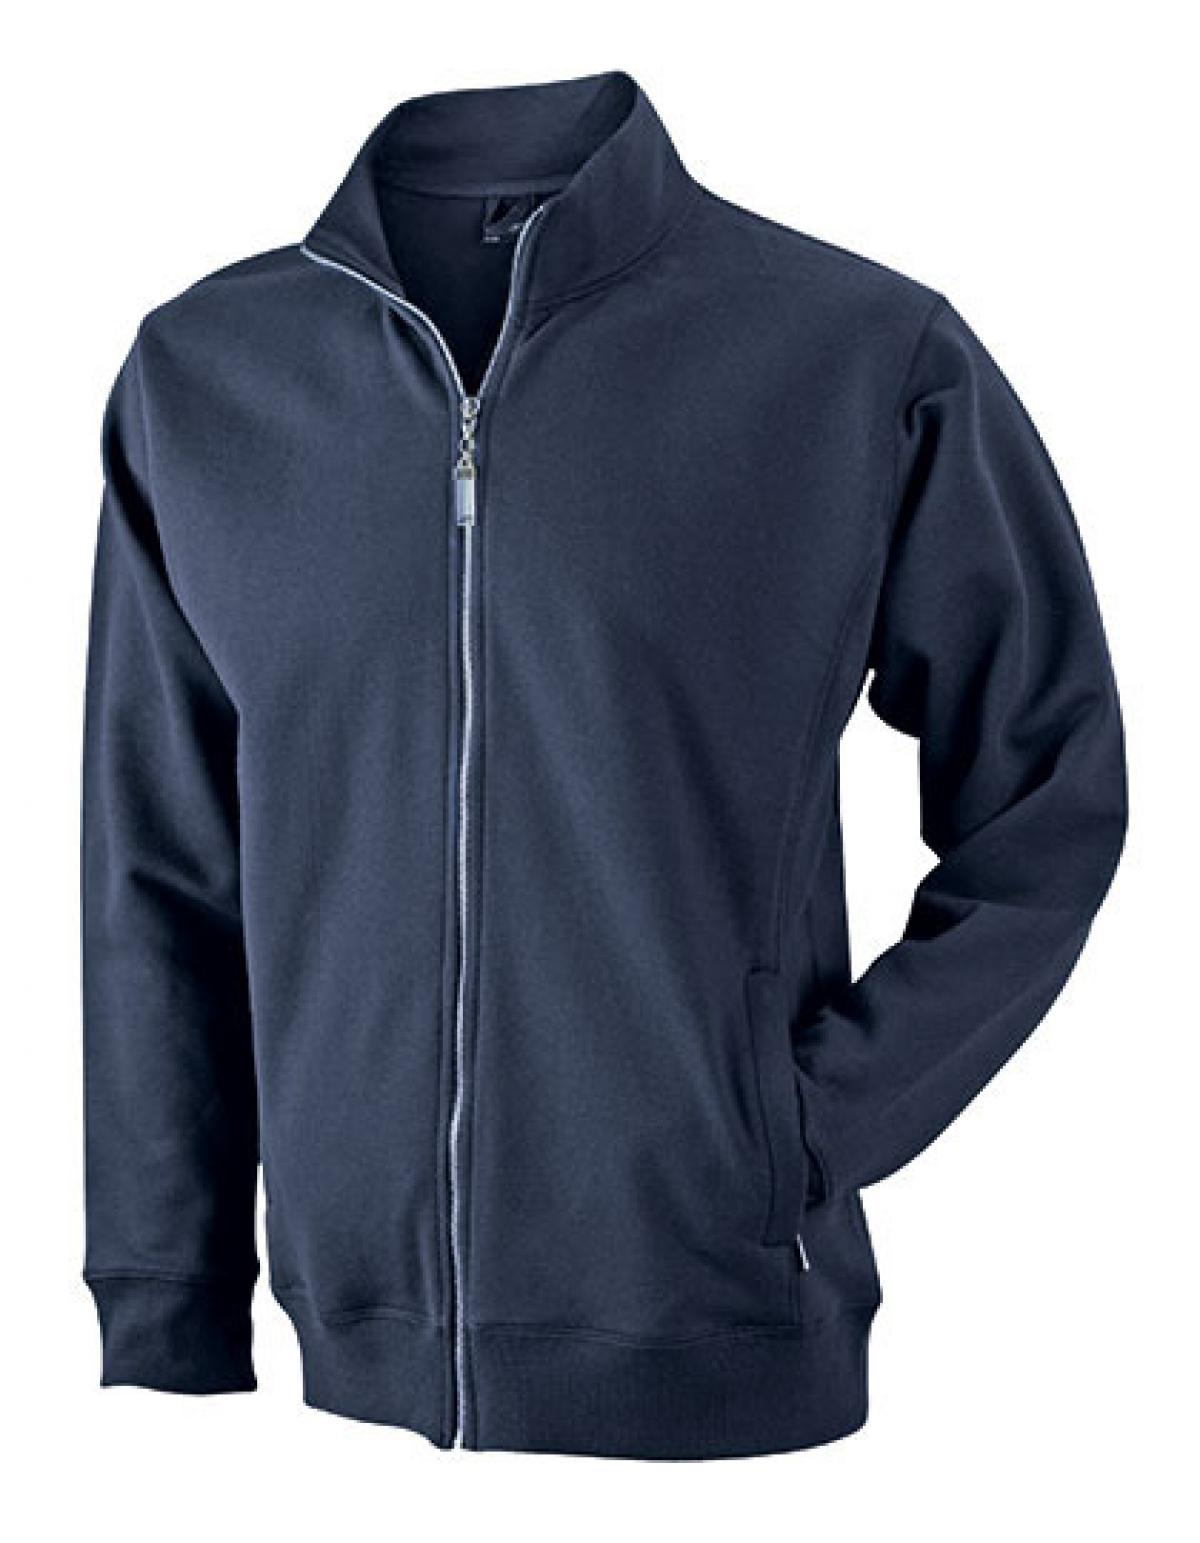 FILA jackets - timeless sports styles with great trend potential Order classic training jackets and sporty leisure jackets online Classic training jackets from FILA have always accompanied athletes before or after their training - and the straight, sporty cuts have long since established themselves as casual leisure basics off the field.